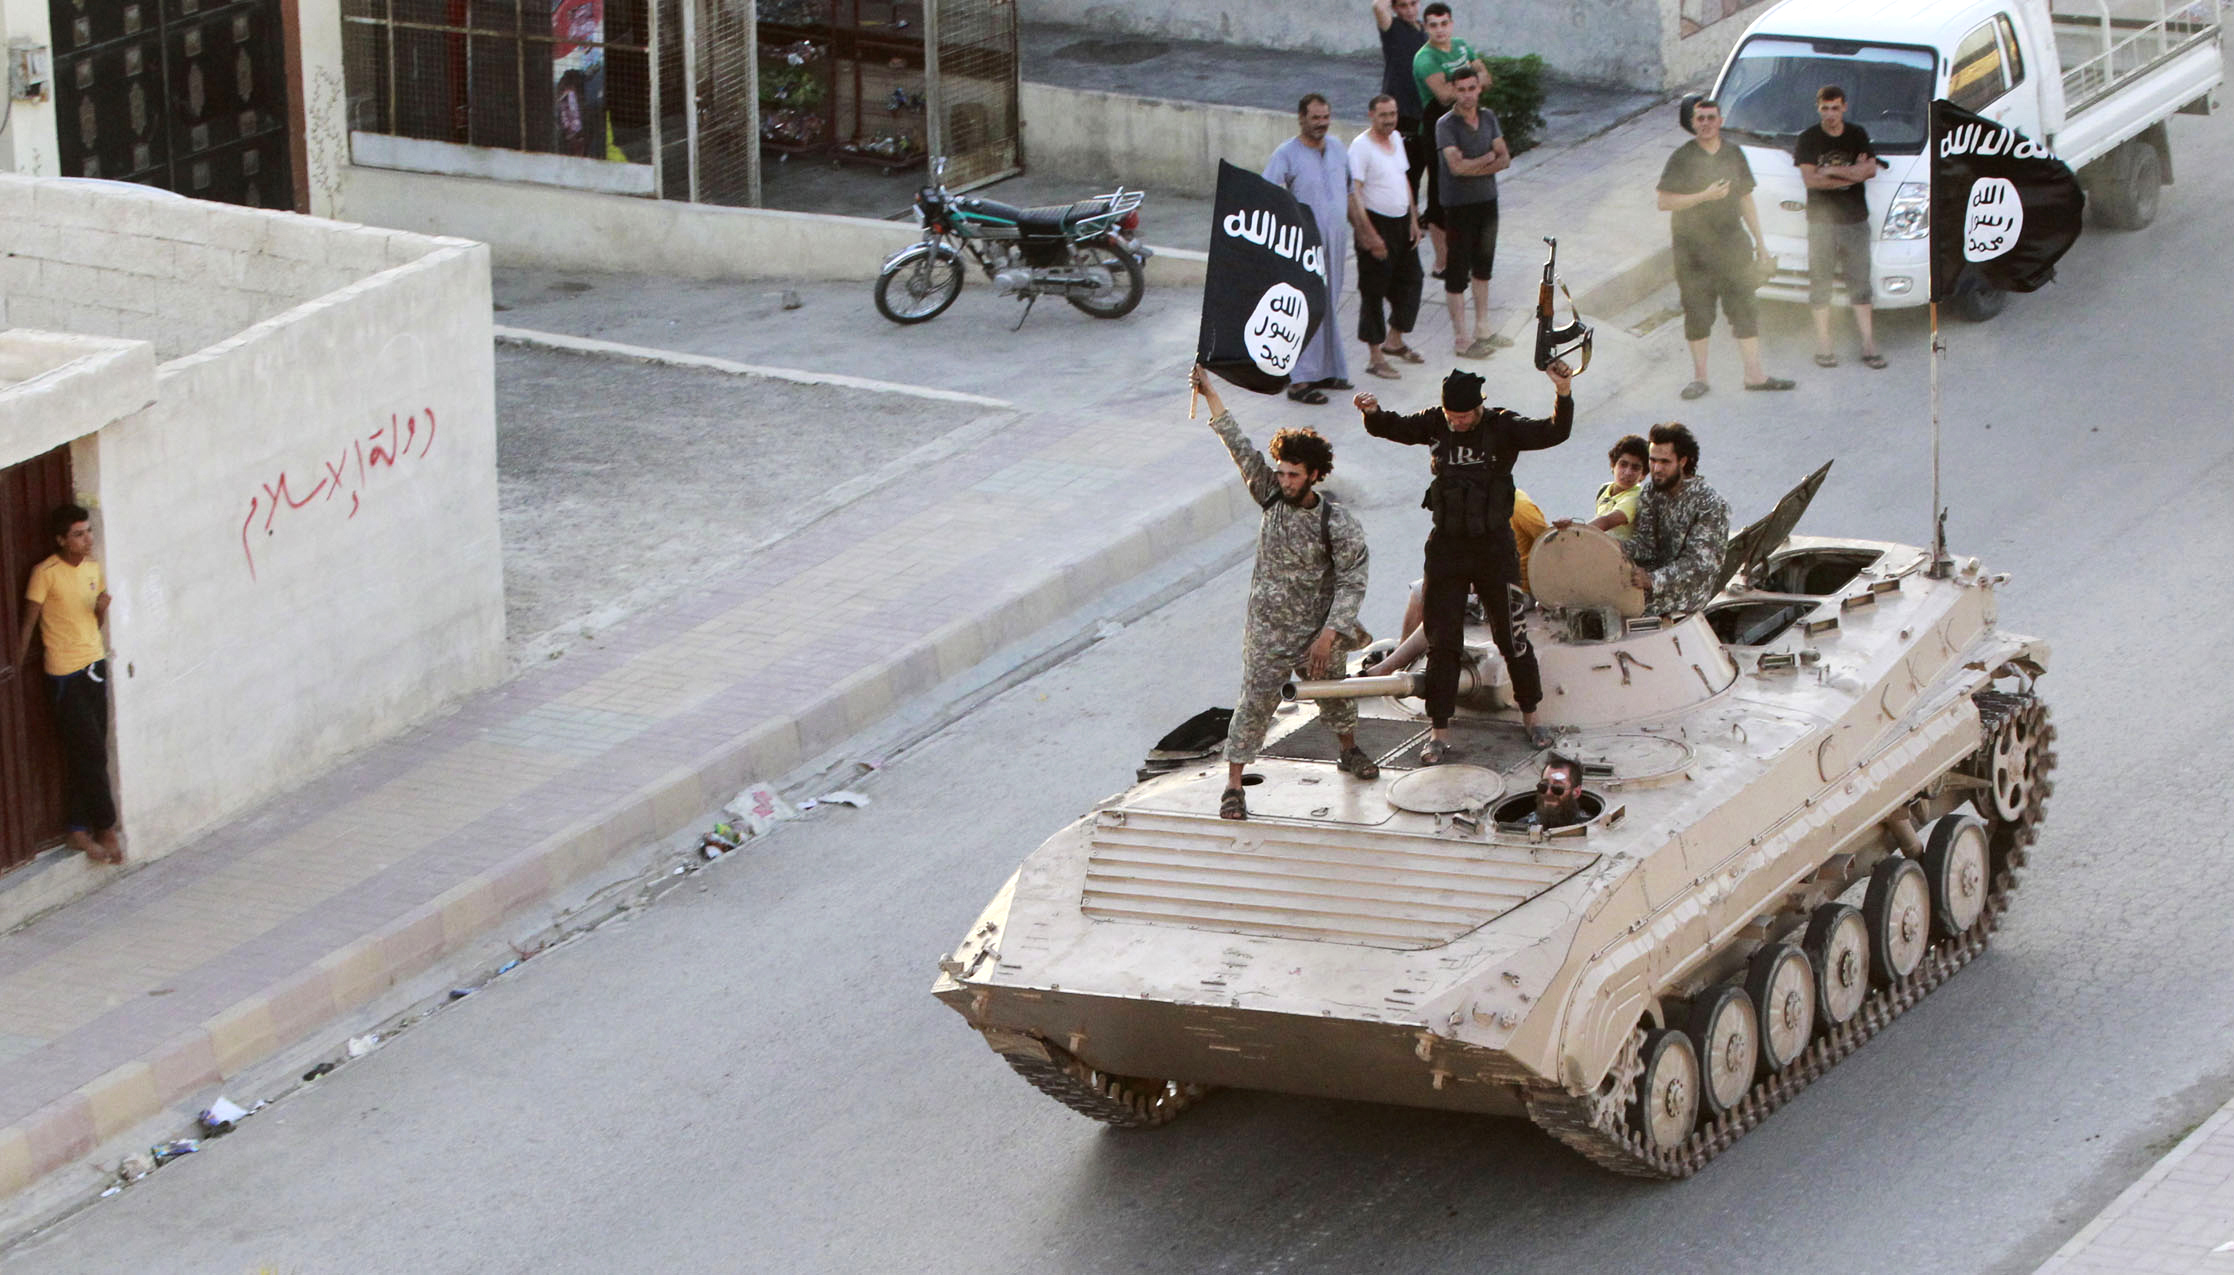 The ISIS rise on social media must be countered